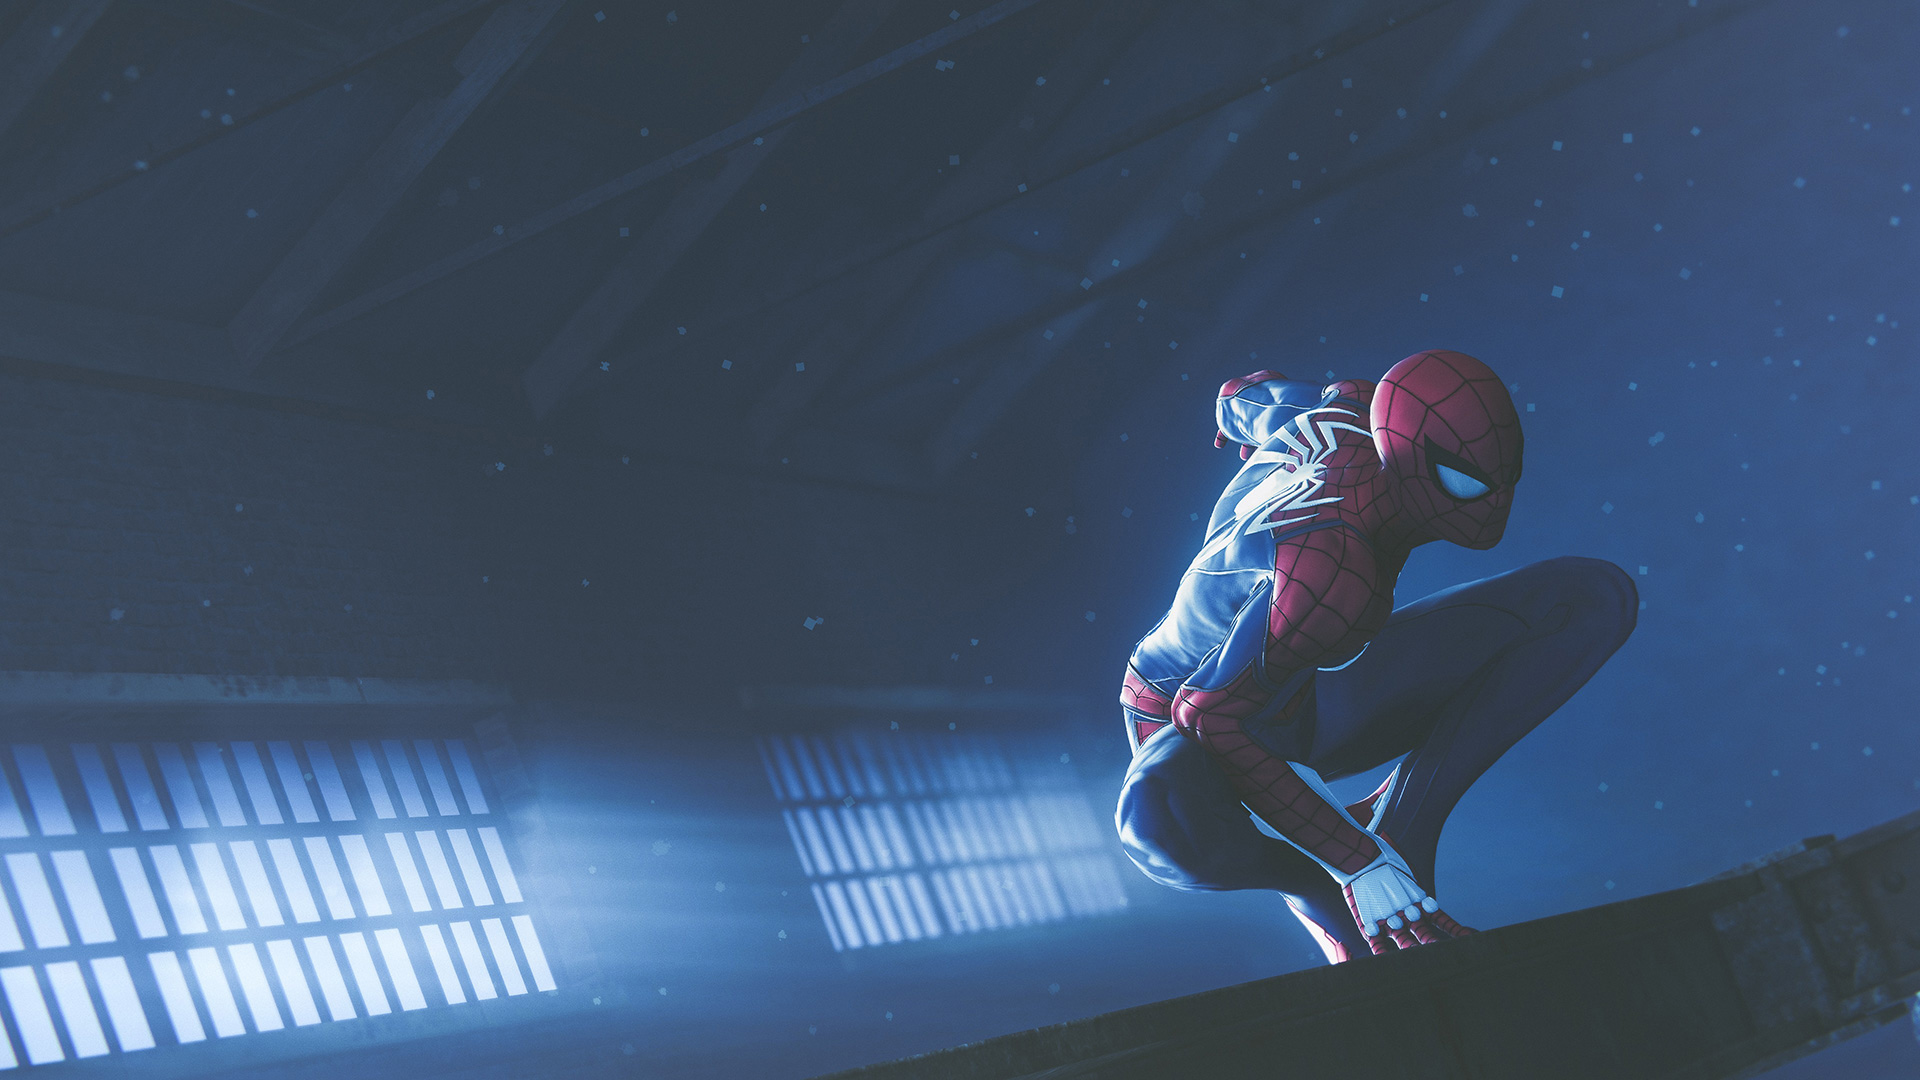 Marvel S Spider Man Wallpapers In Ultra Hd 4k Gameranx